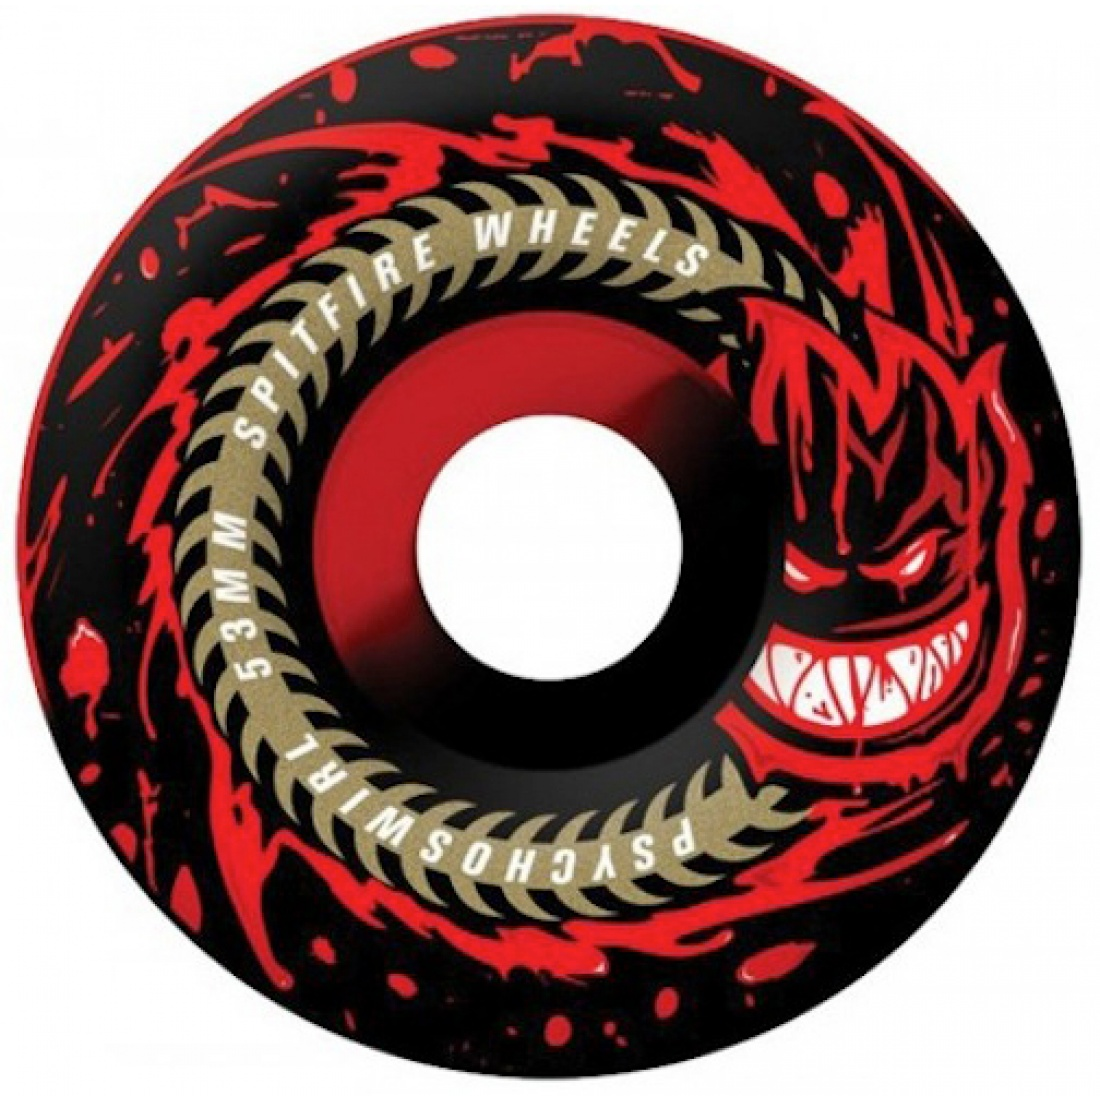 SF-Psychoswirl 53MM Wheels (Set of 4)